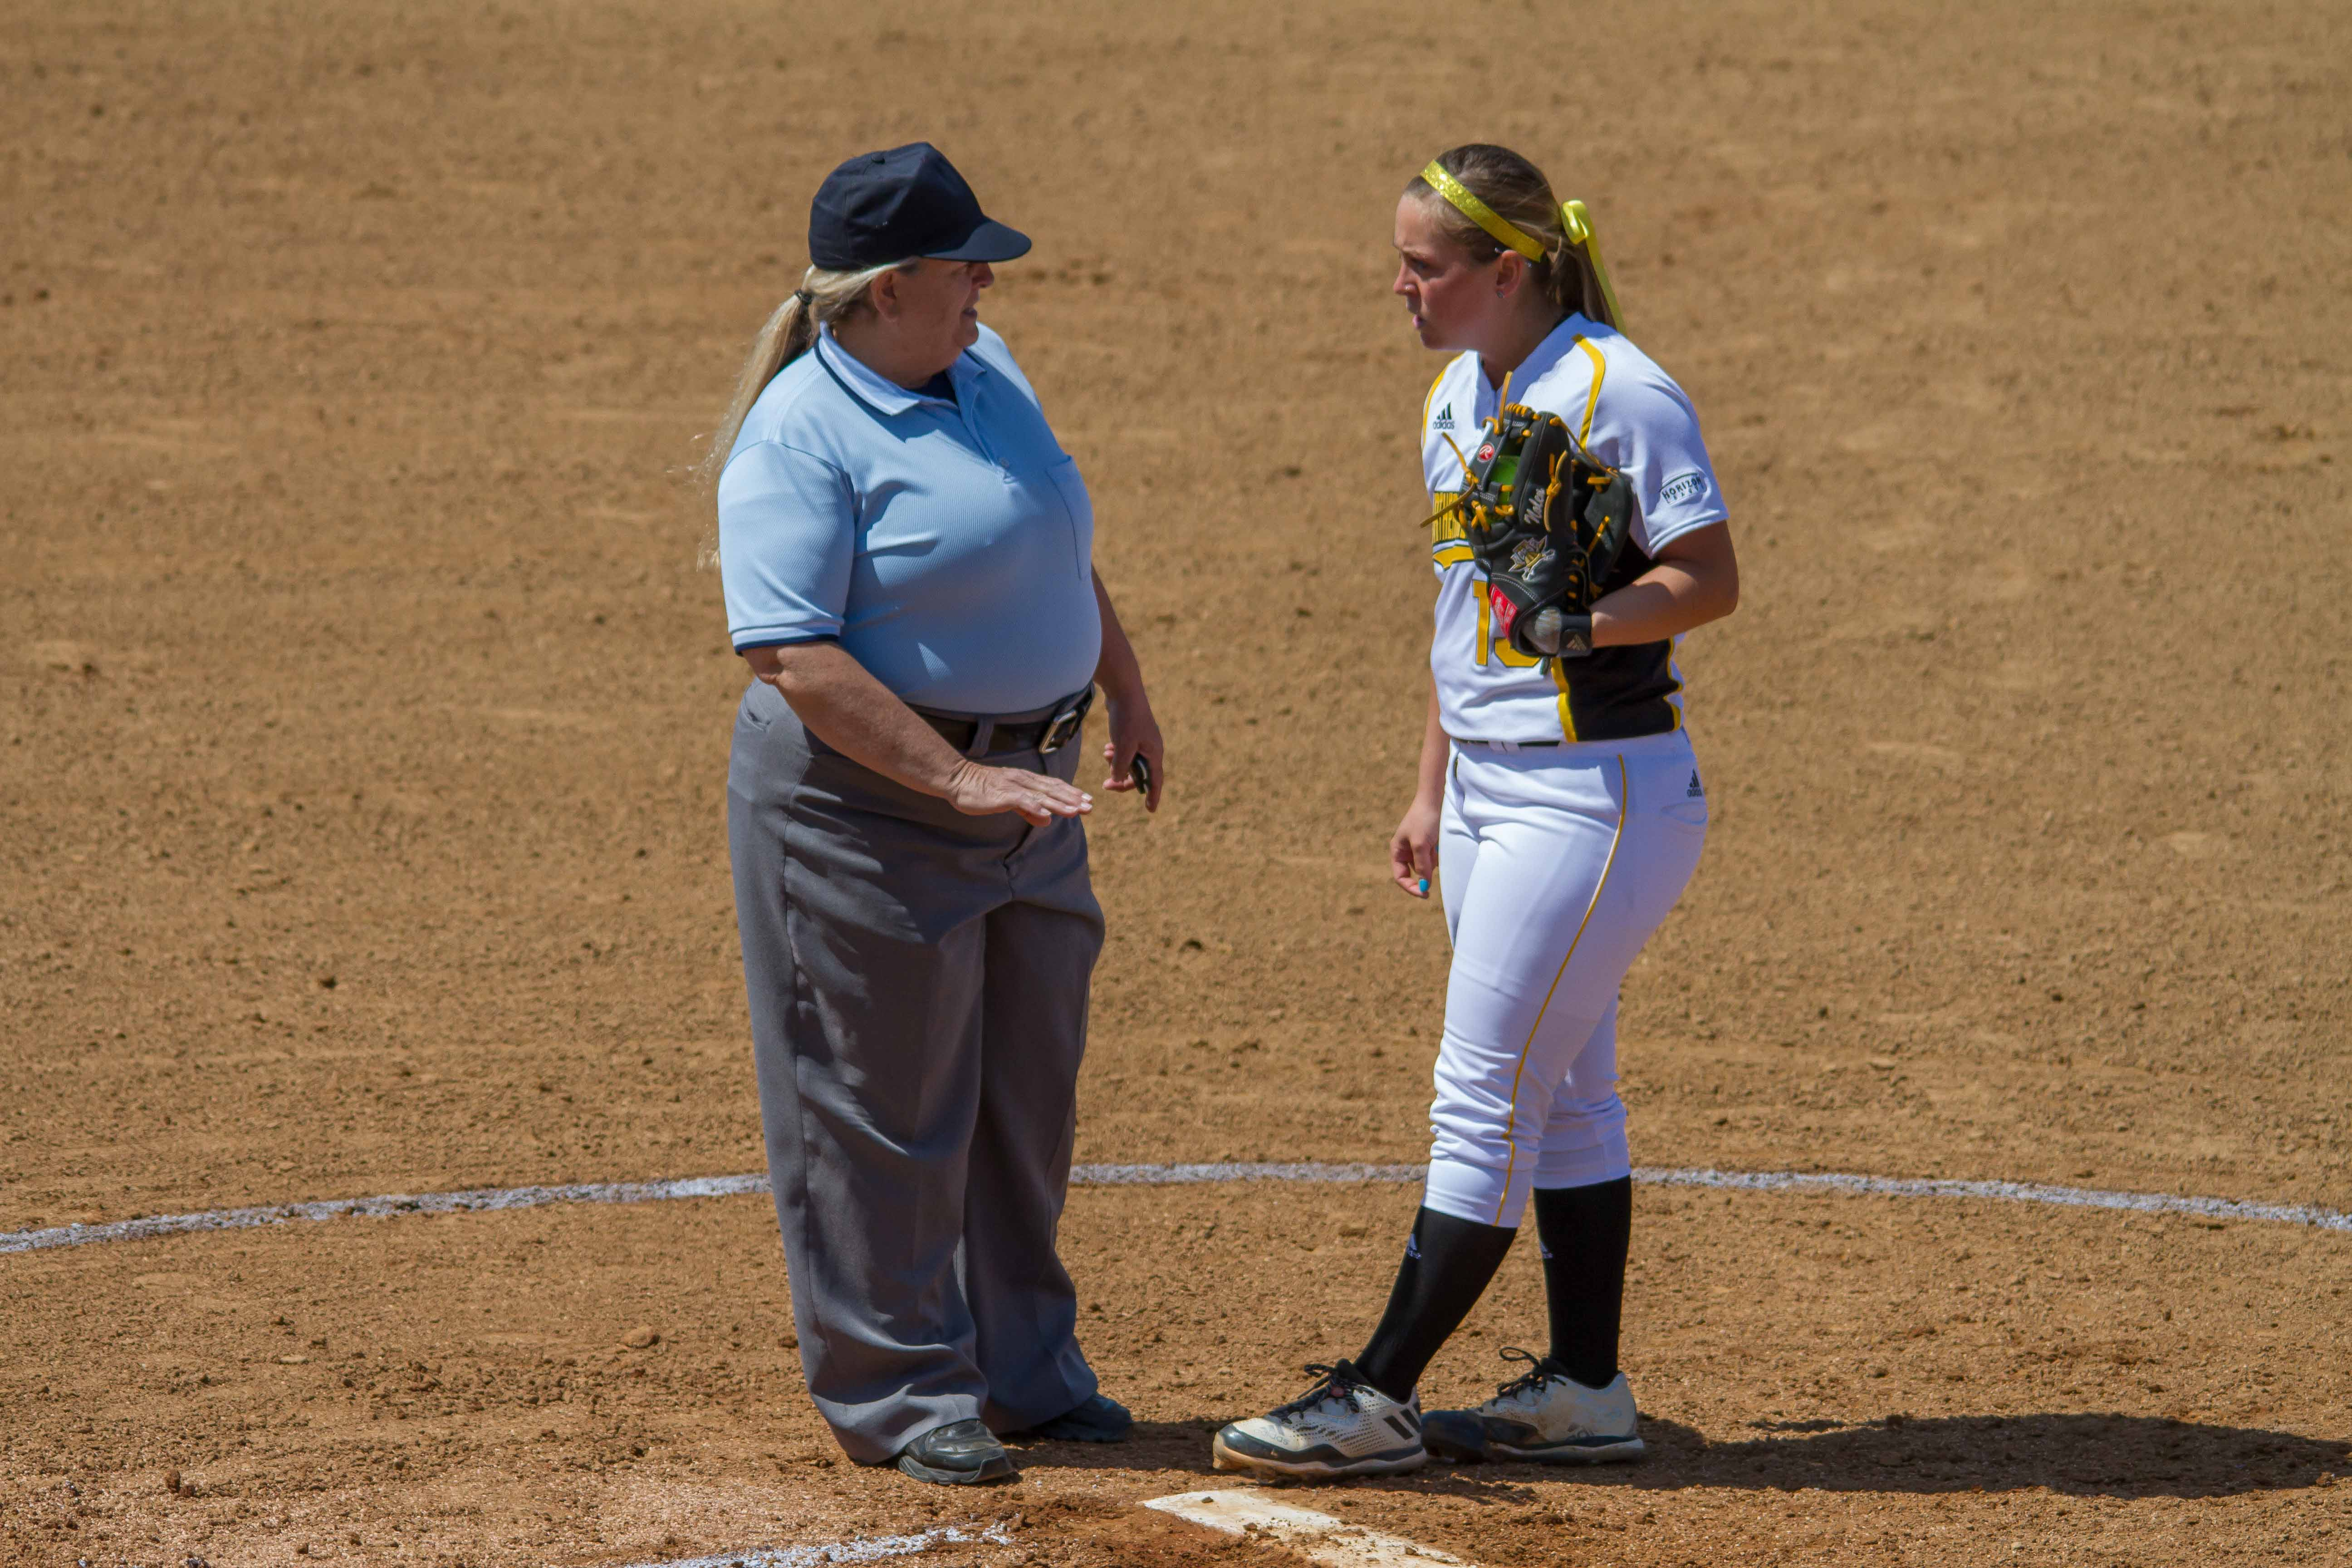 Pitcher+Charlie+Nolen+has+a+discussion+with+an+umpire+during+the+game+with+Youngstown+State